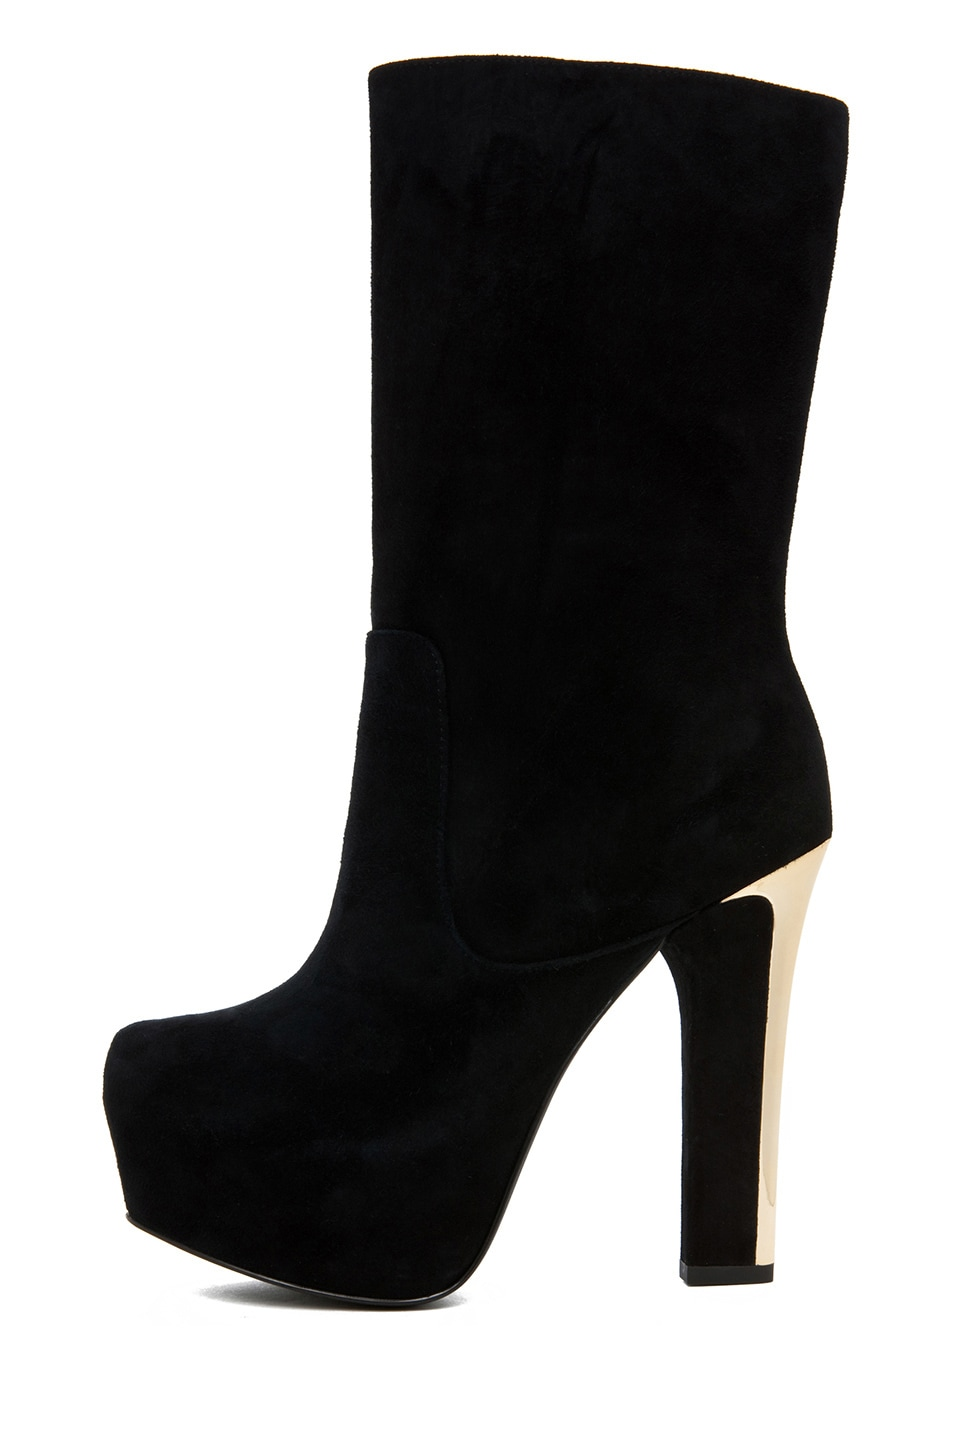 Image 1 of Theyskens' Theory Emilie Aved Suede Crop Boot in Black